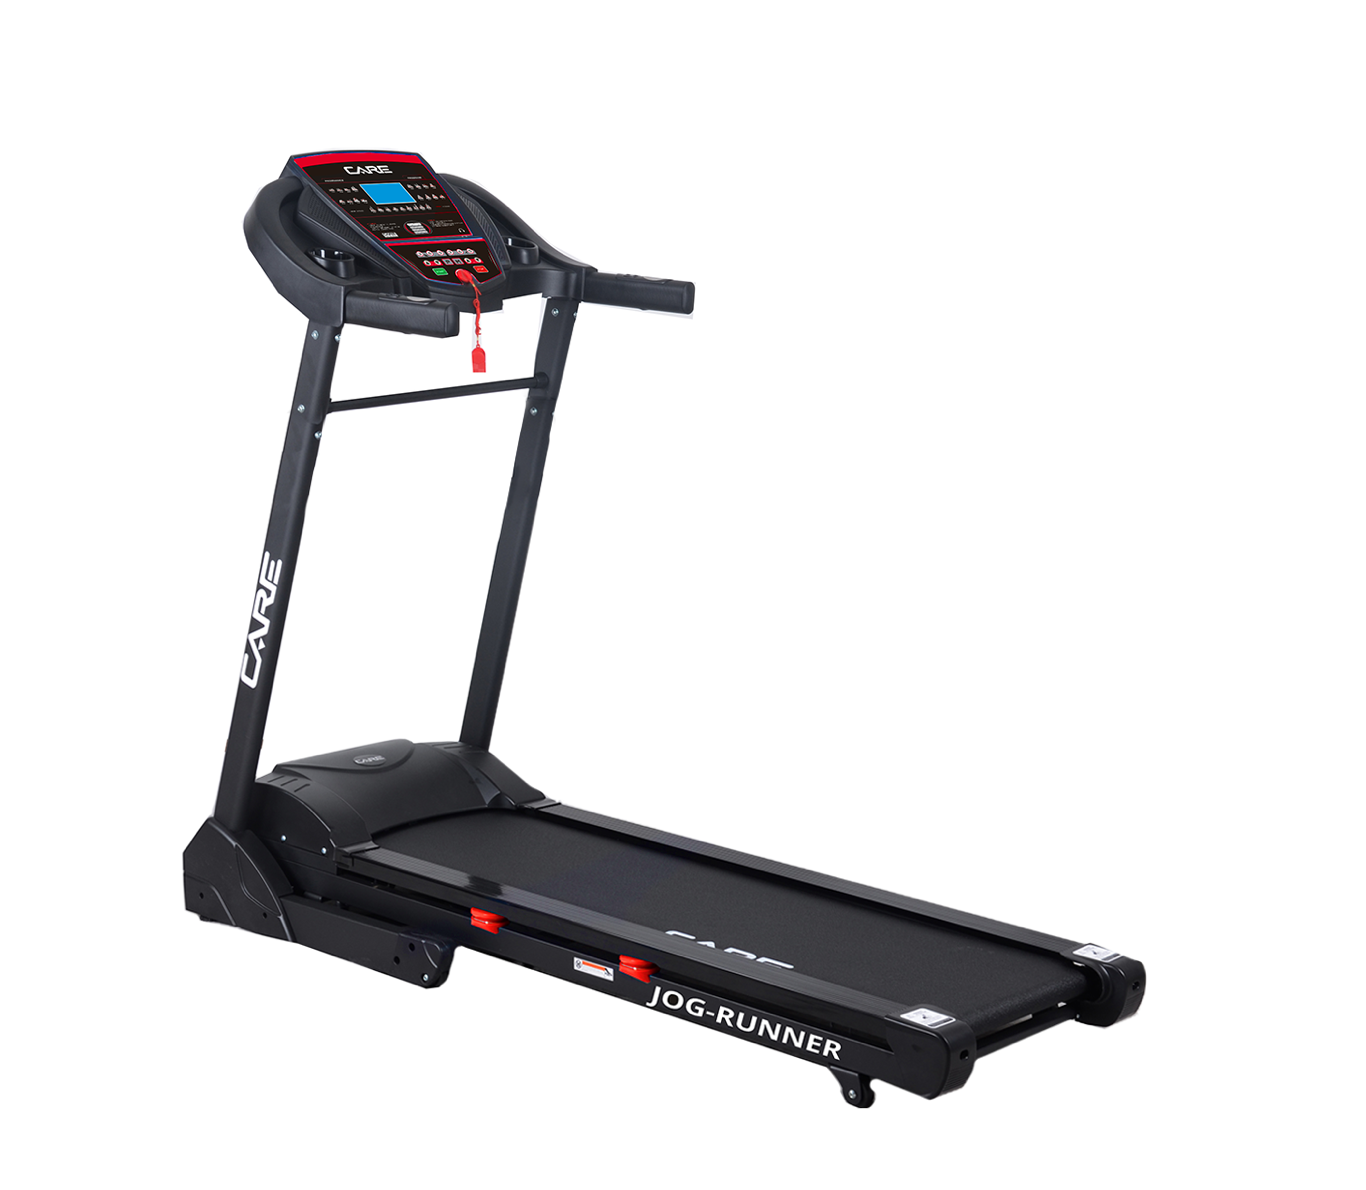 TAPIS DE COURSE CONNECTE - JOG RUNNER